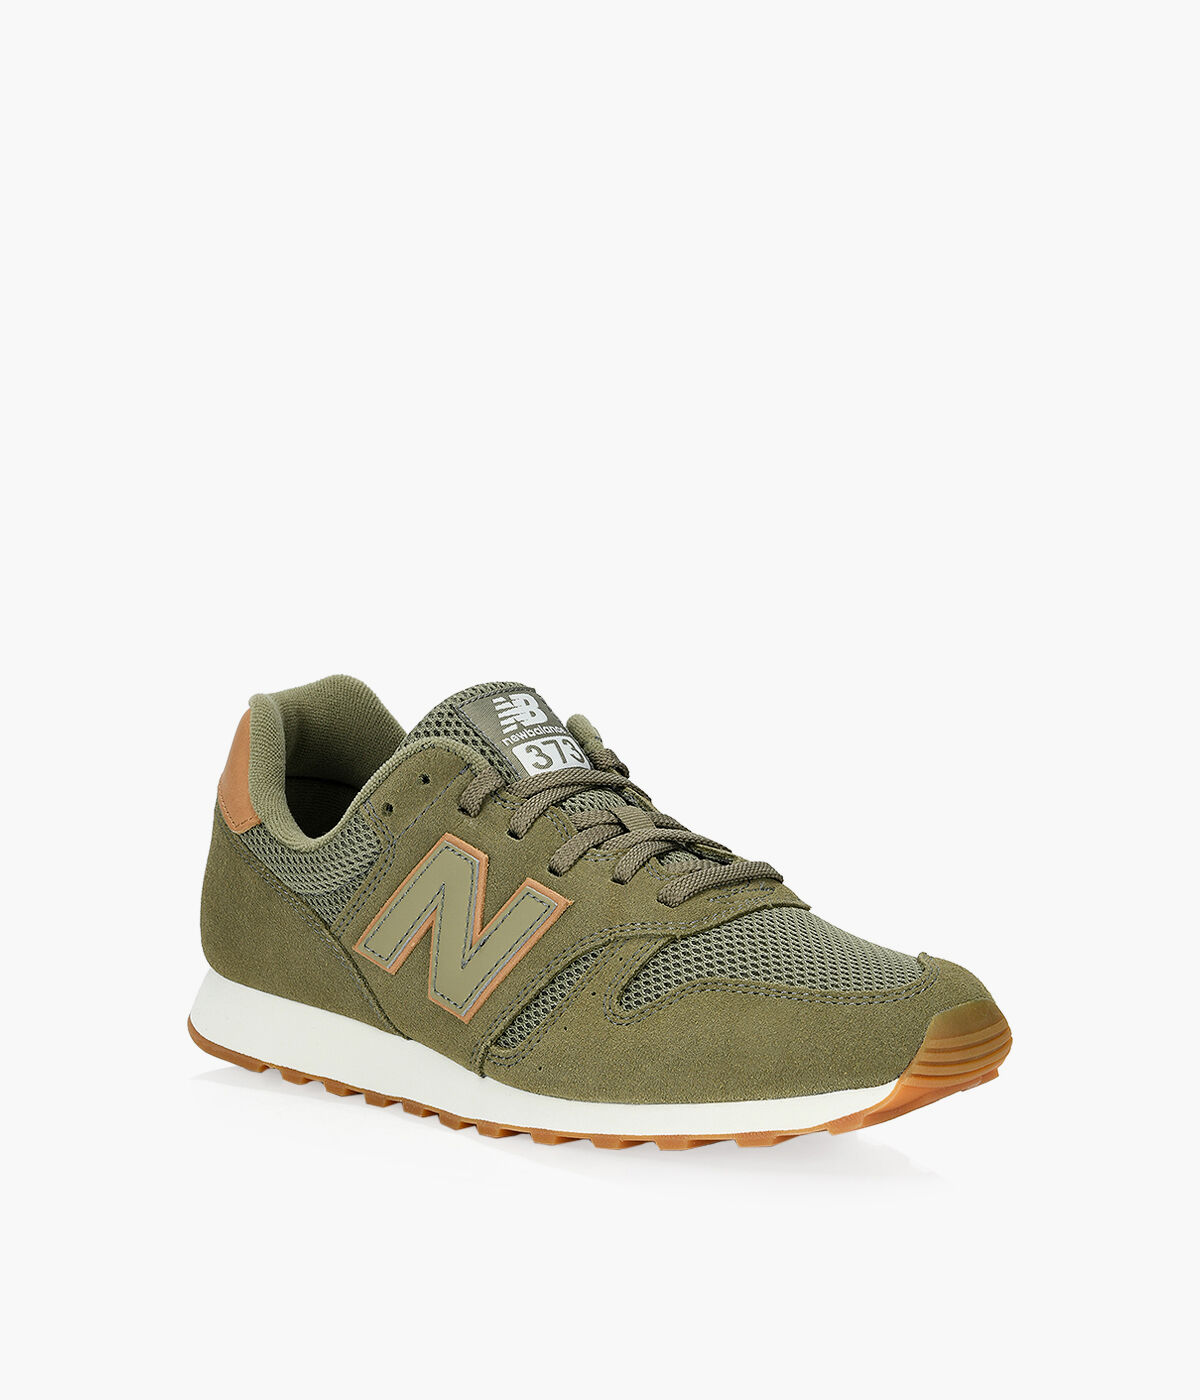 NEW BALANCE ML373 - Suede   Browns Shoes